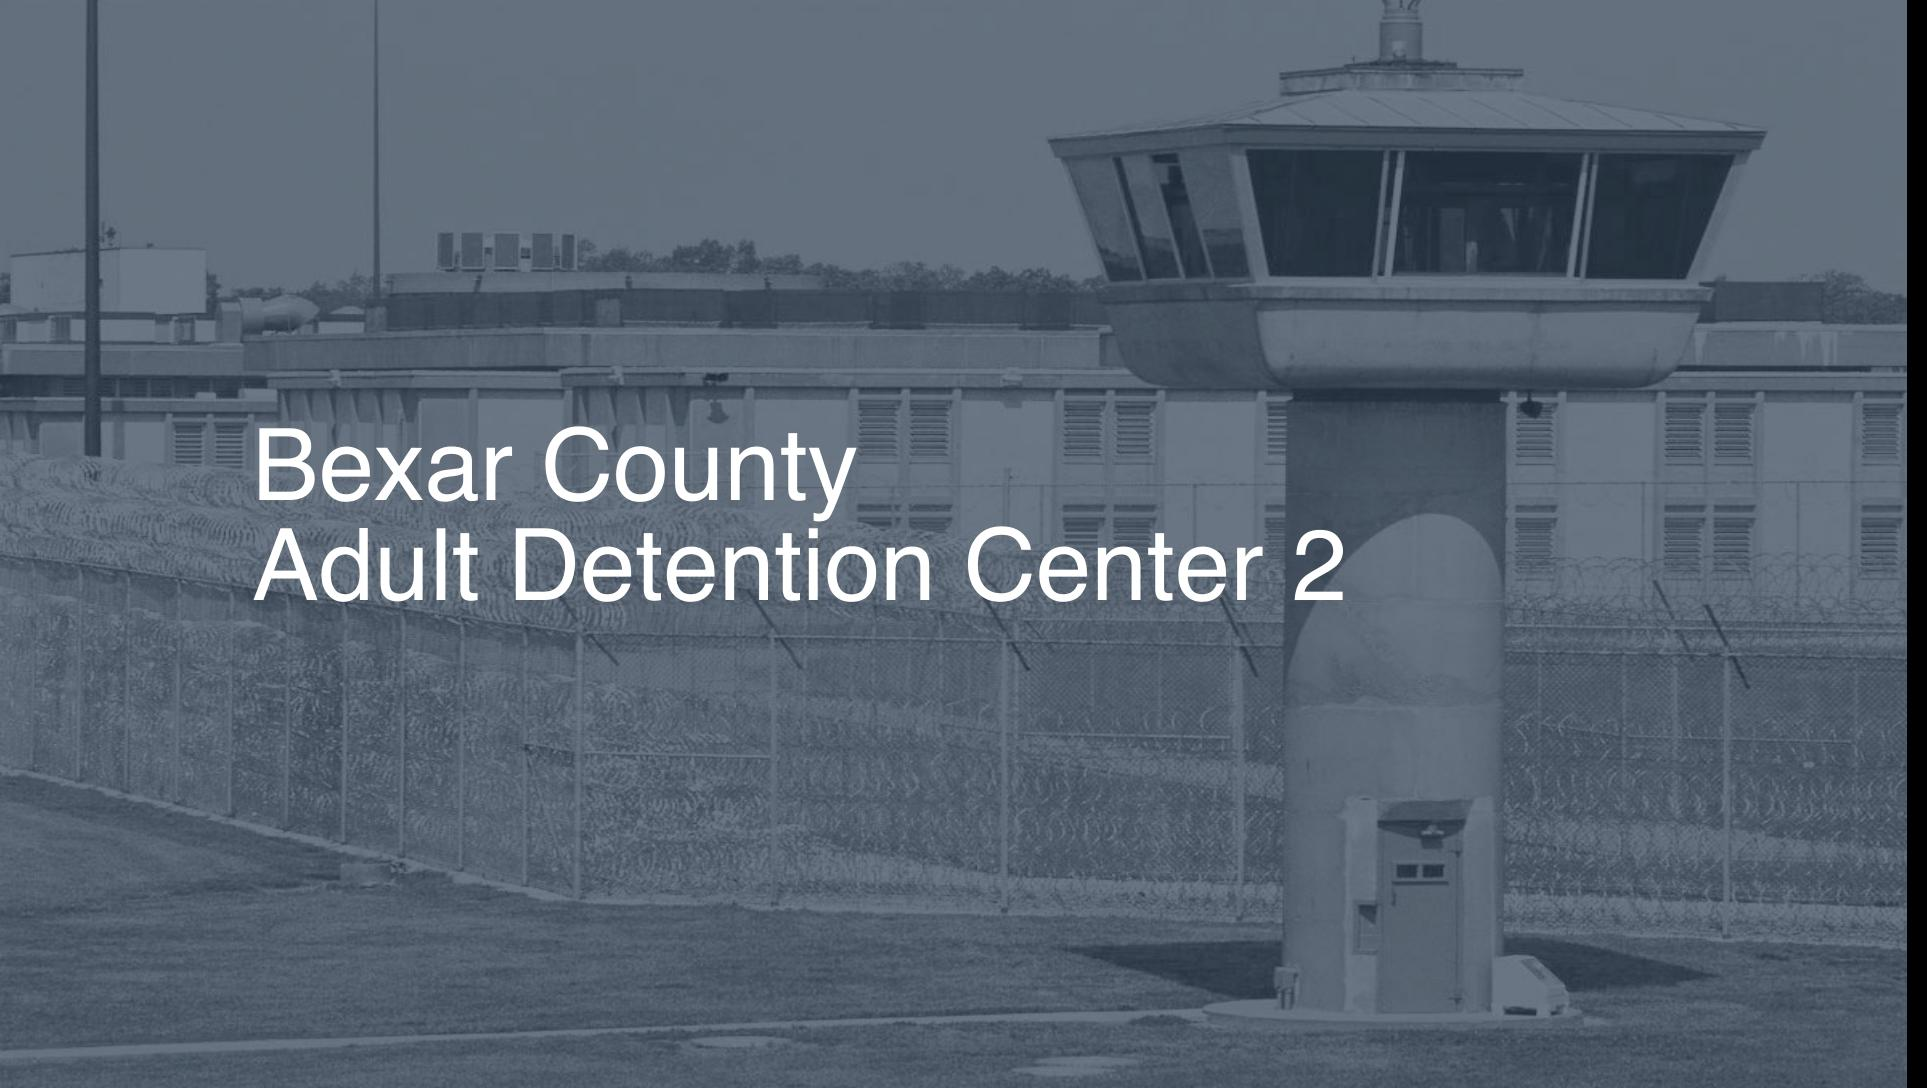 Bexar County Adult Detention Center | Pigeonly - Inmate